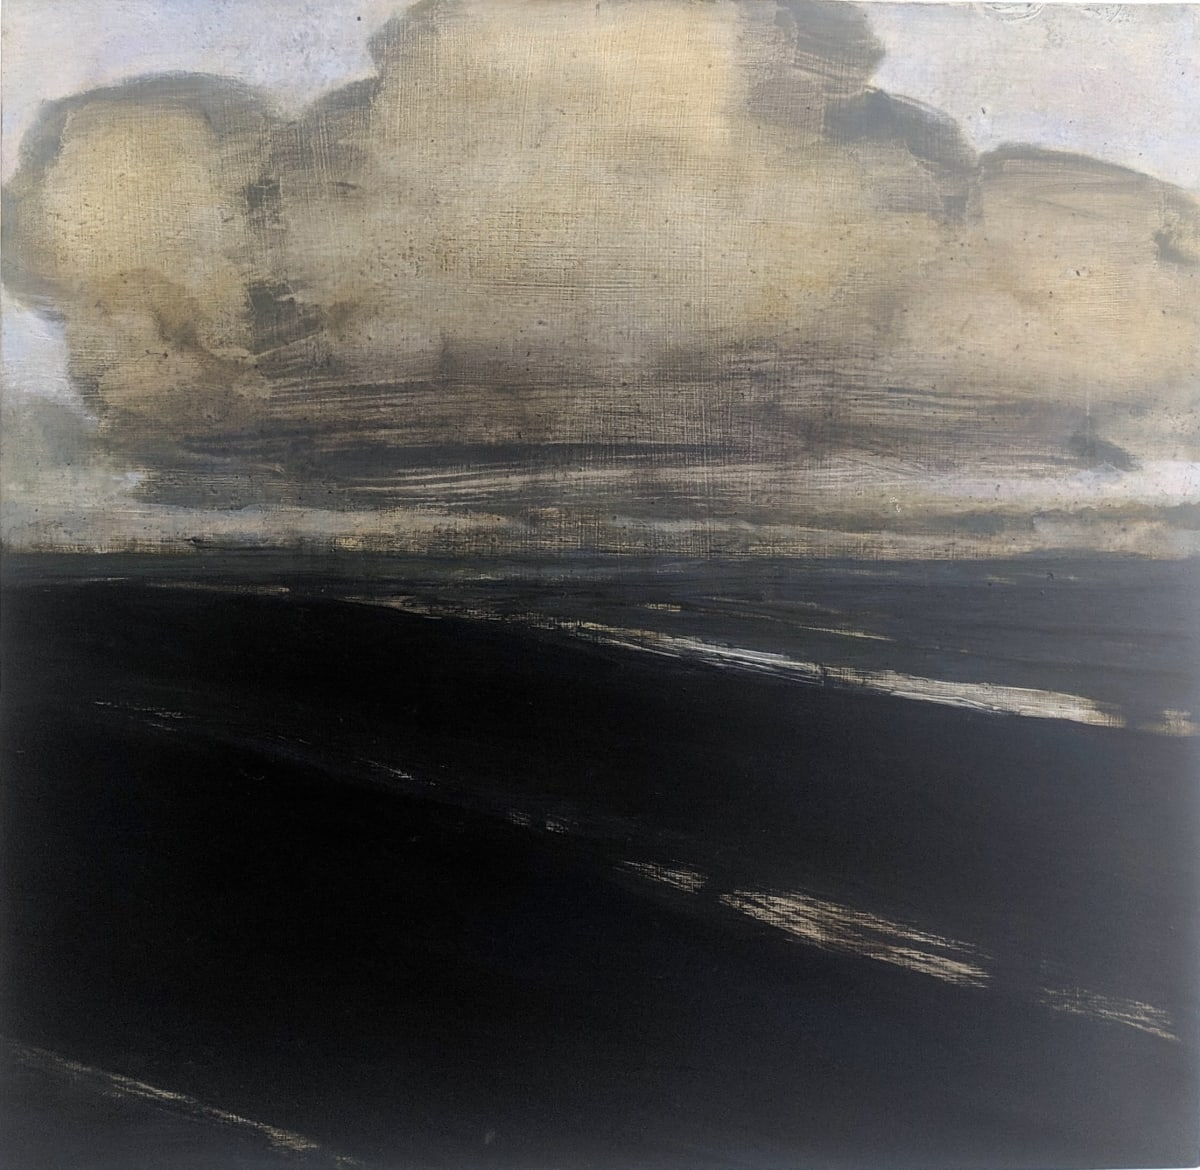 David Konigsberg, Approaching, 2019